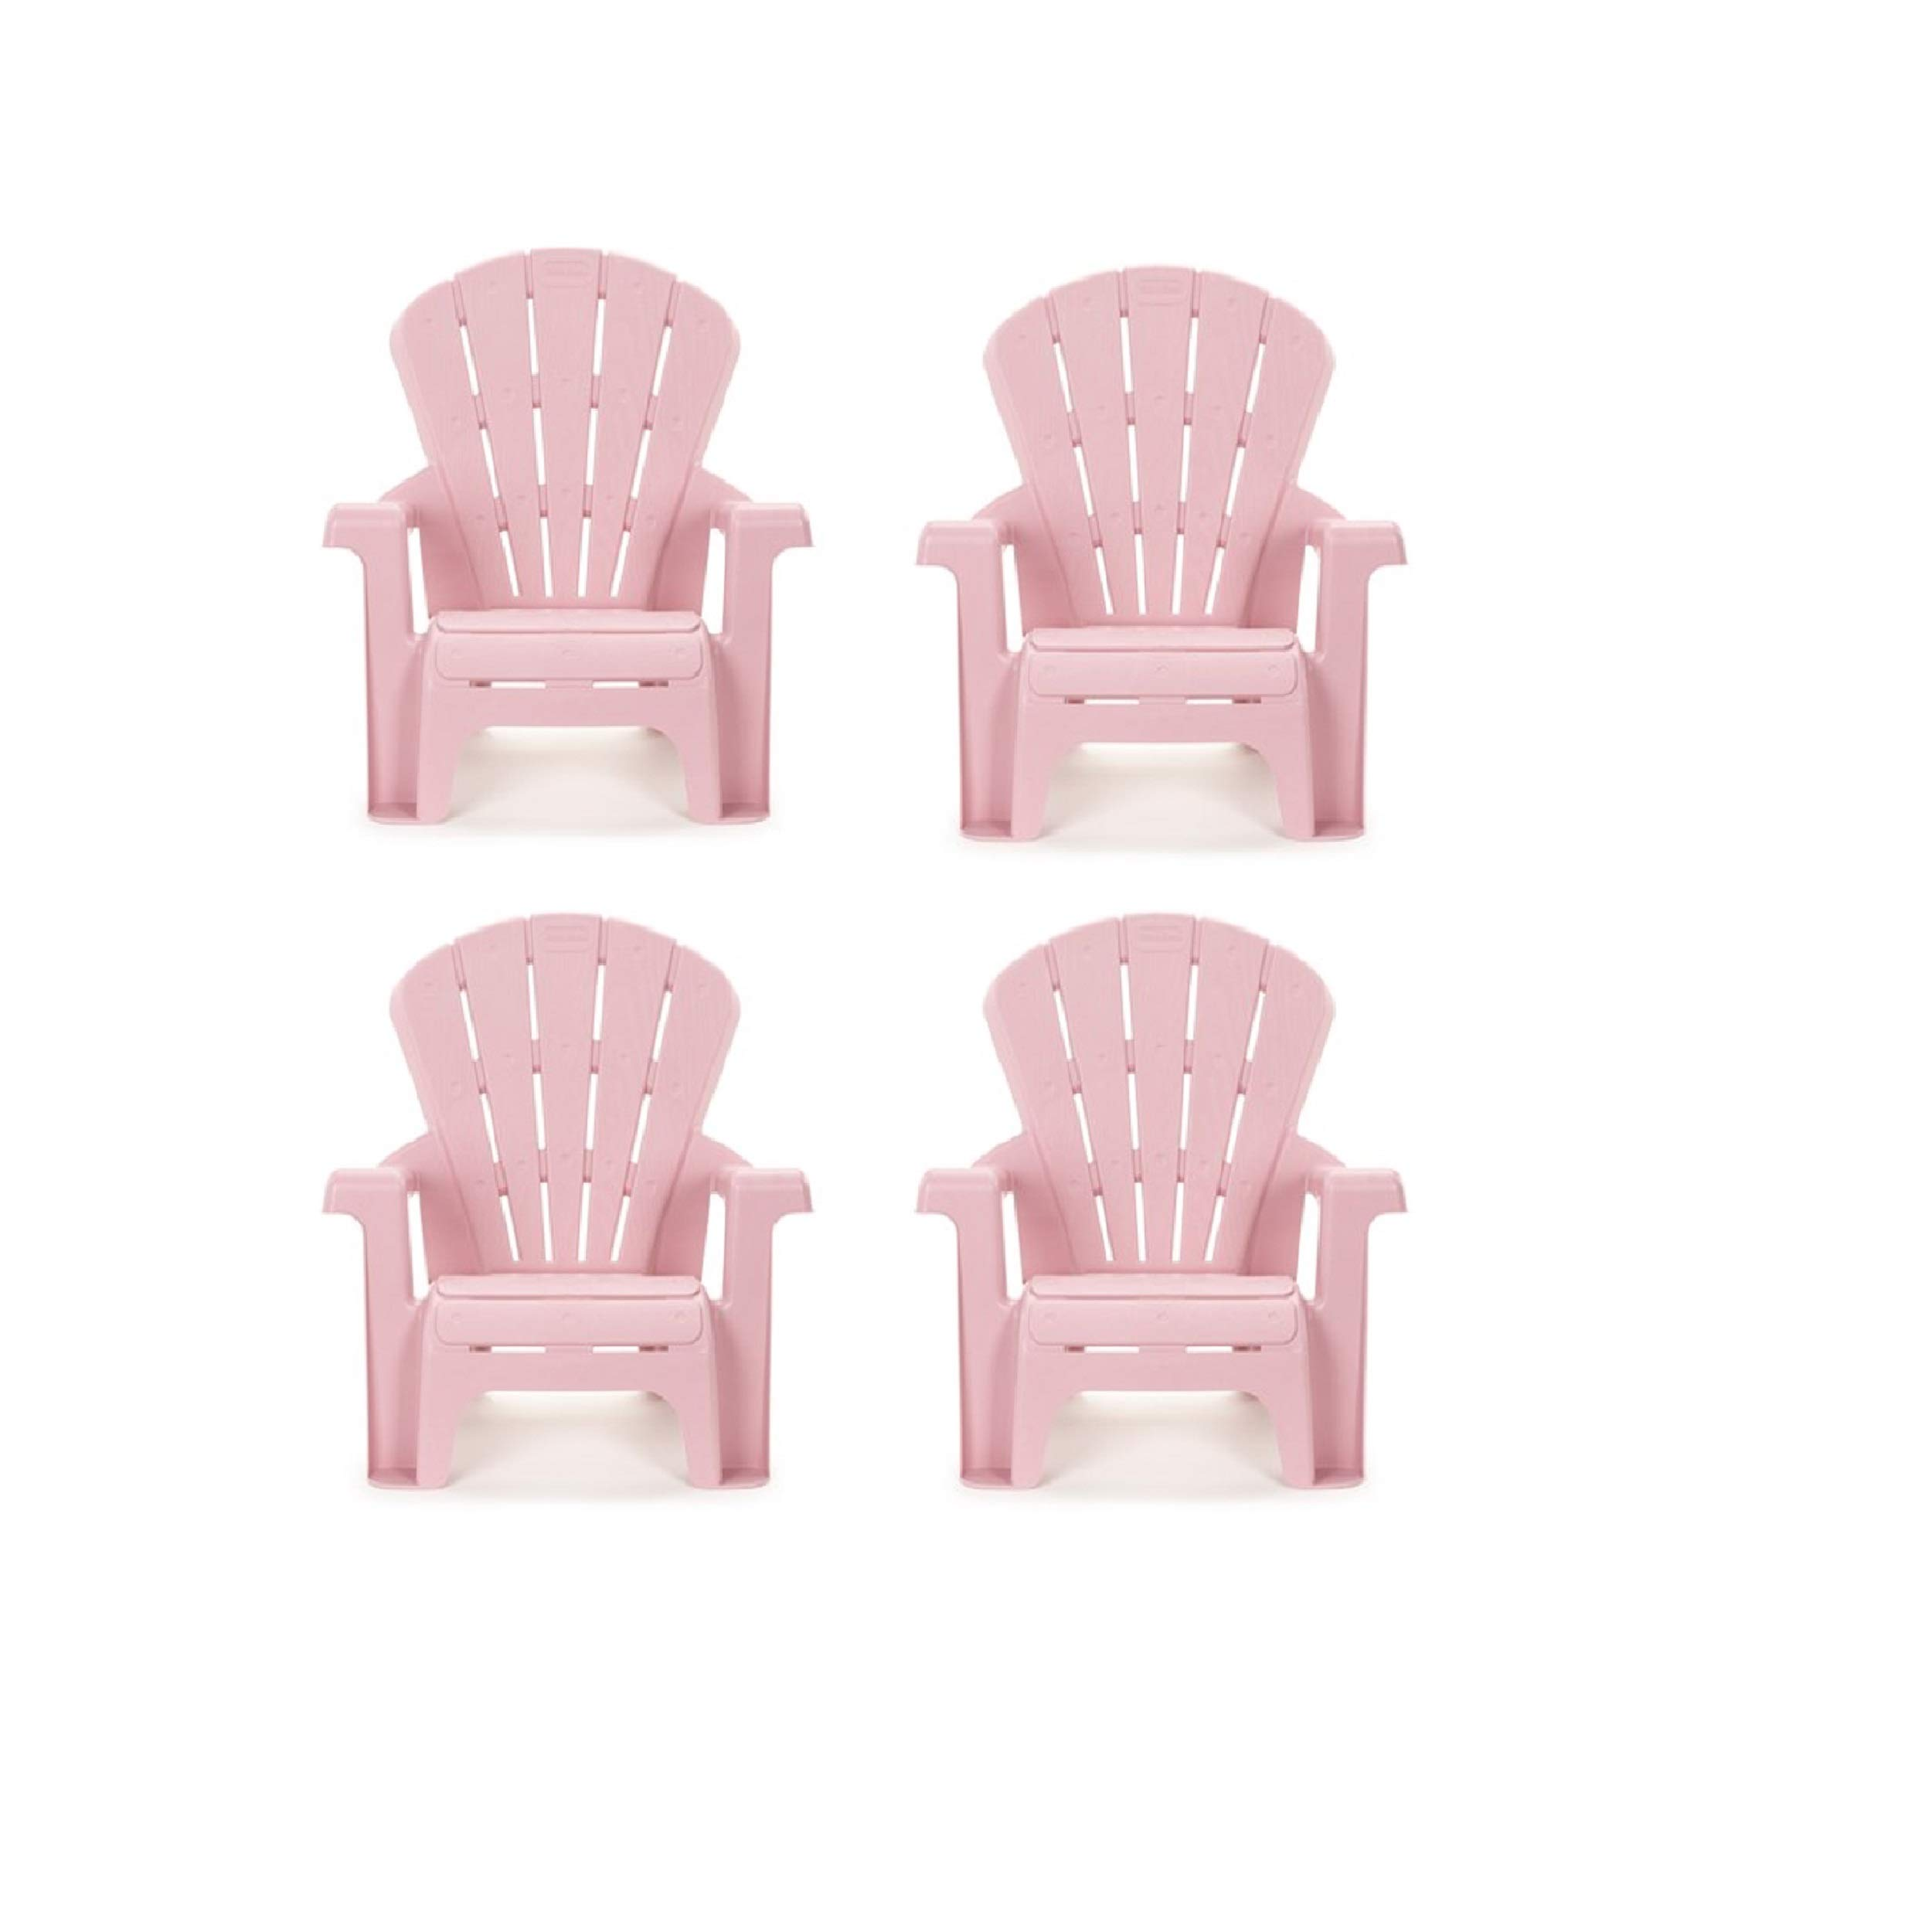 Little Tikes Garden Chair (4 Pieces), Pink by Little Tikes